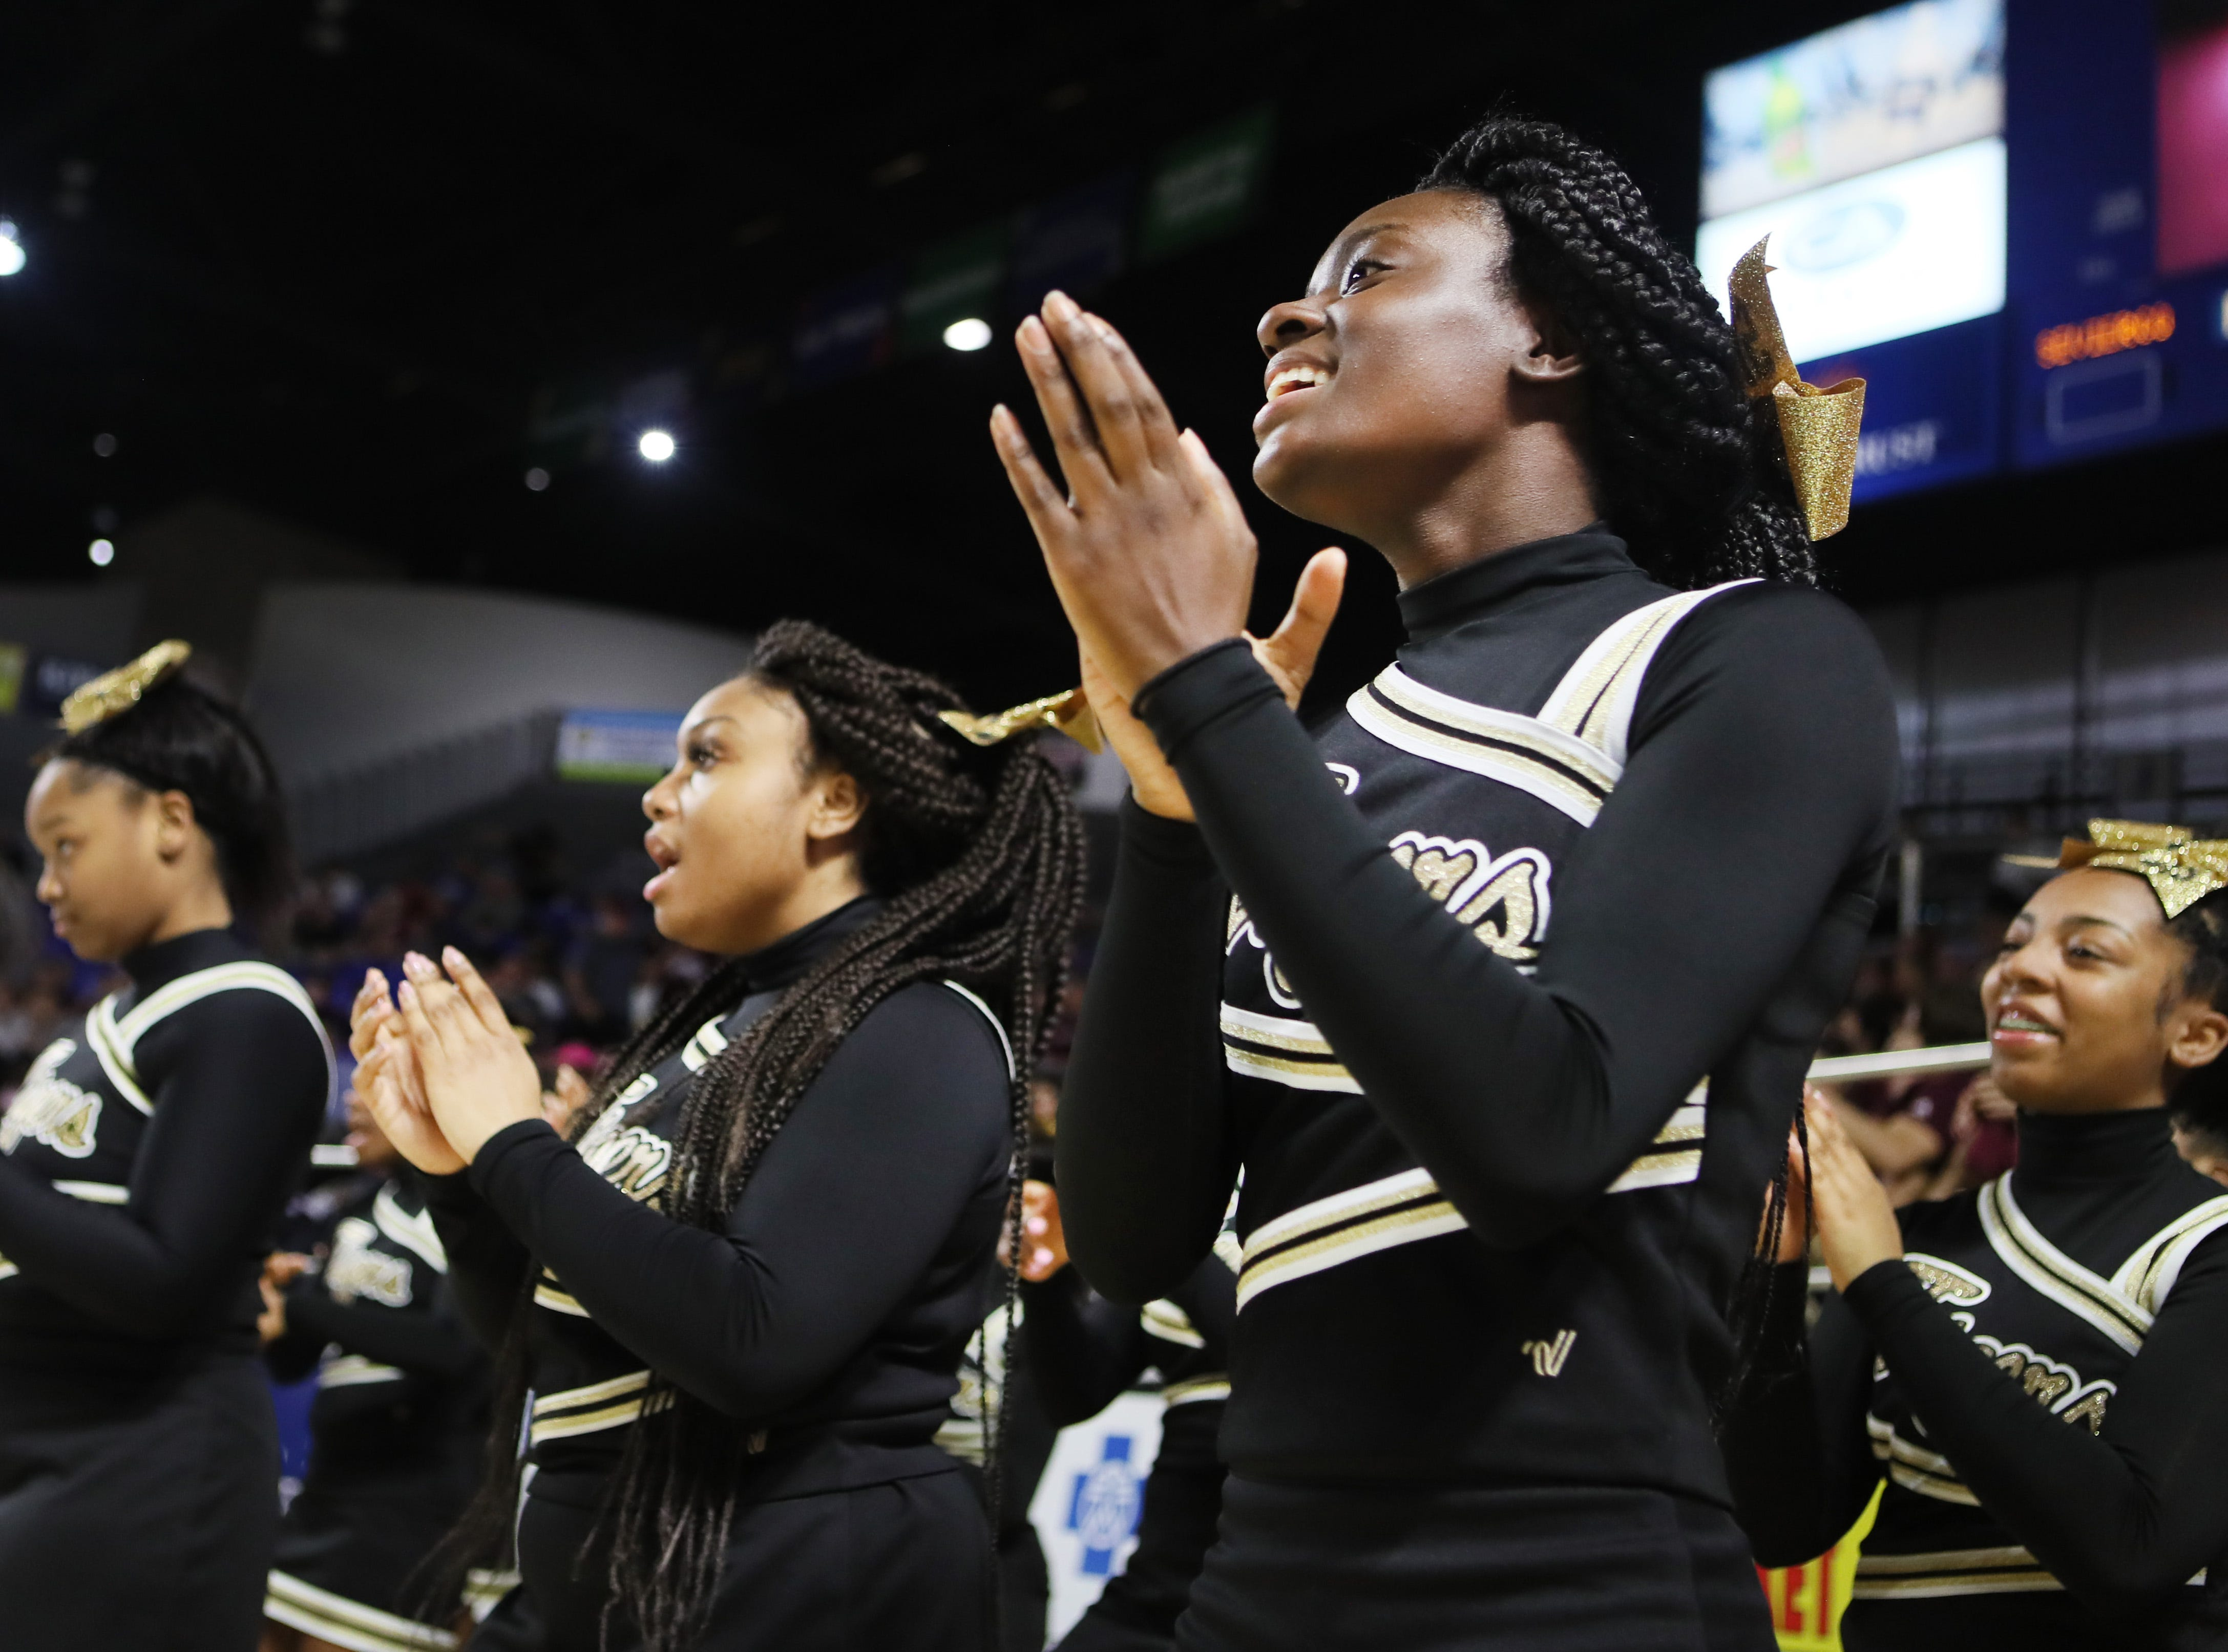 Whitehaven's cheerleaders perform as their team takes on Sevier County during the TSSAA Division I basketball state tournament at the Murphy Center in Murfreesboro, Tenn. on Wednesday, March 13, 2019.